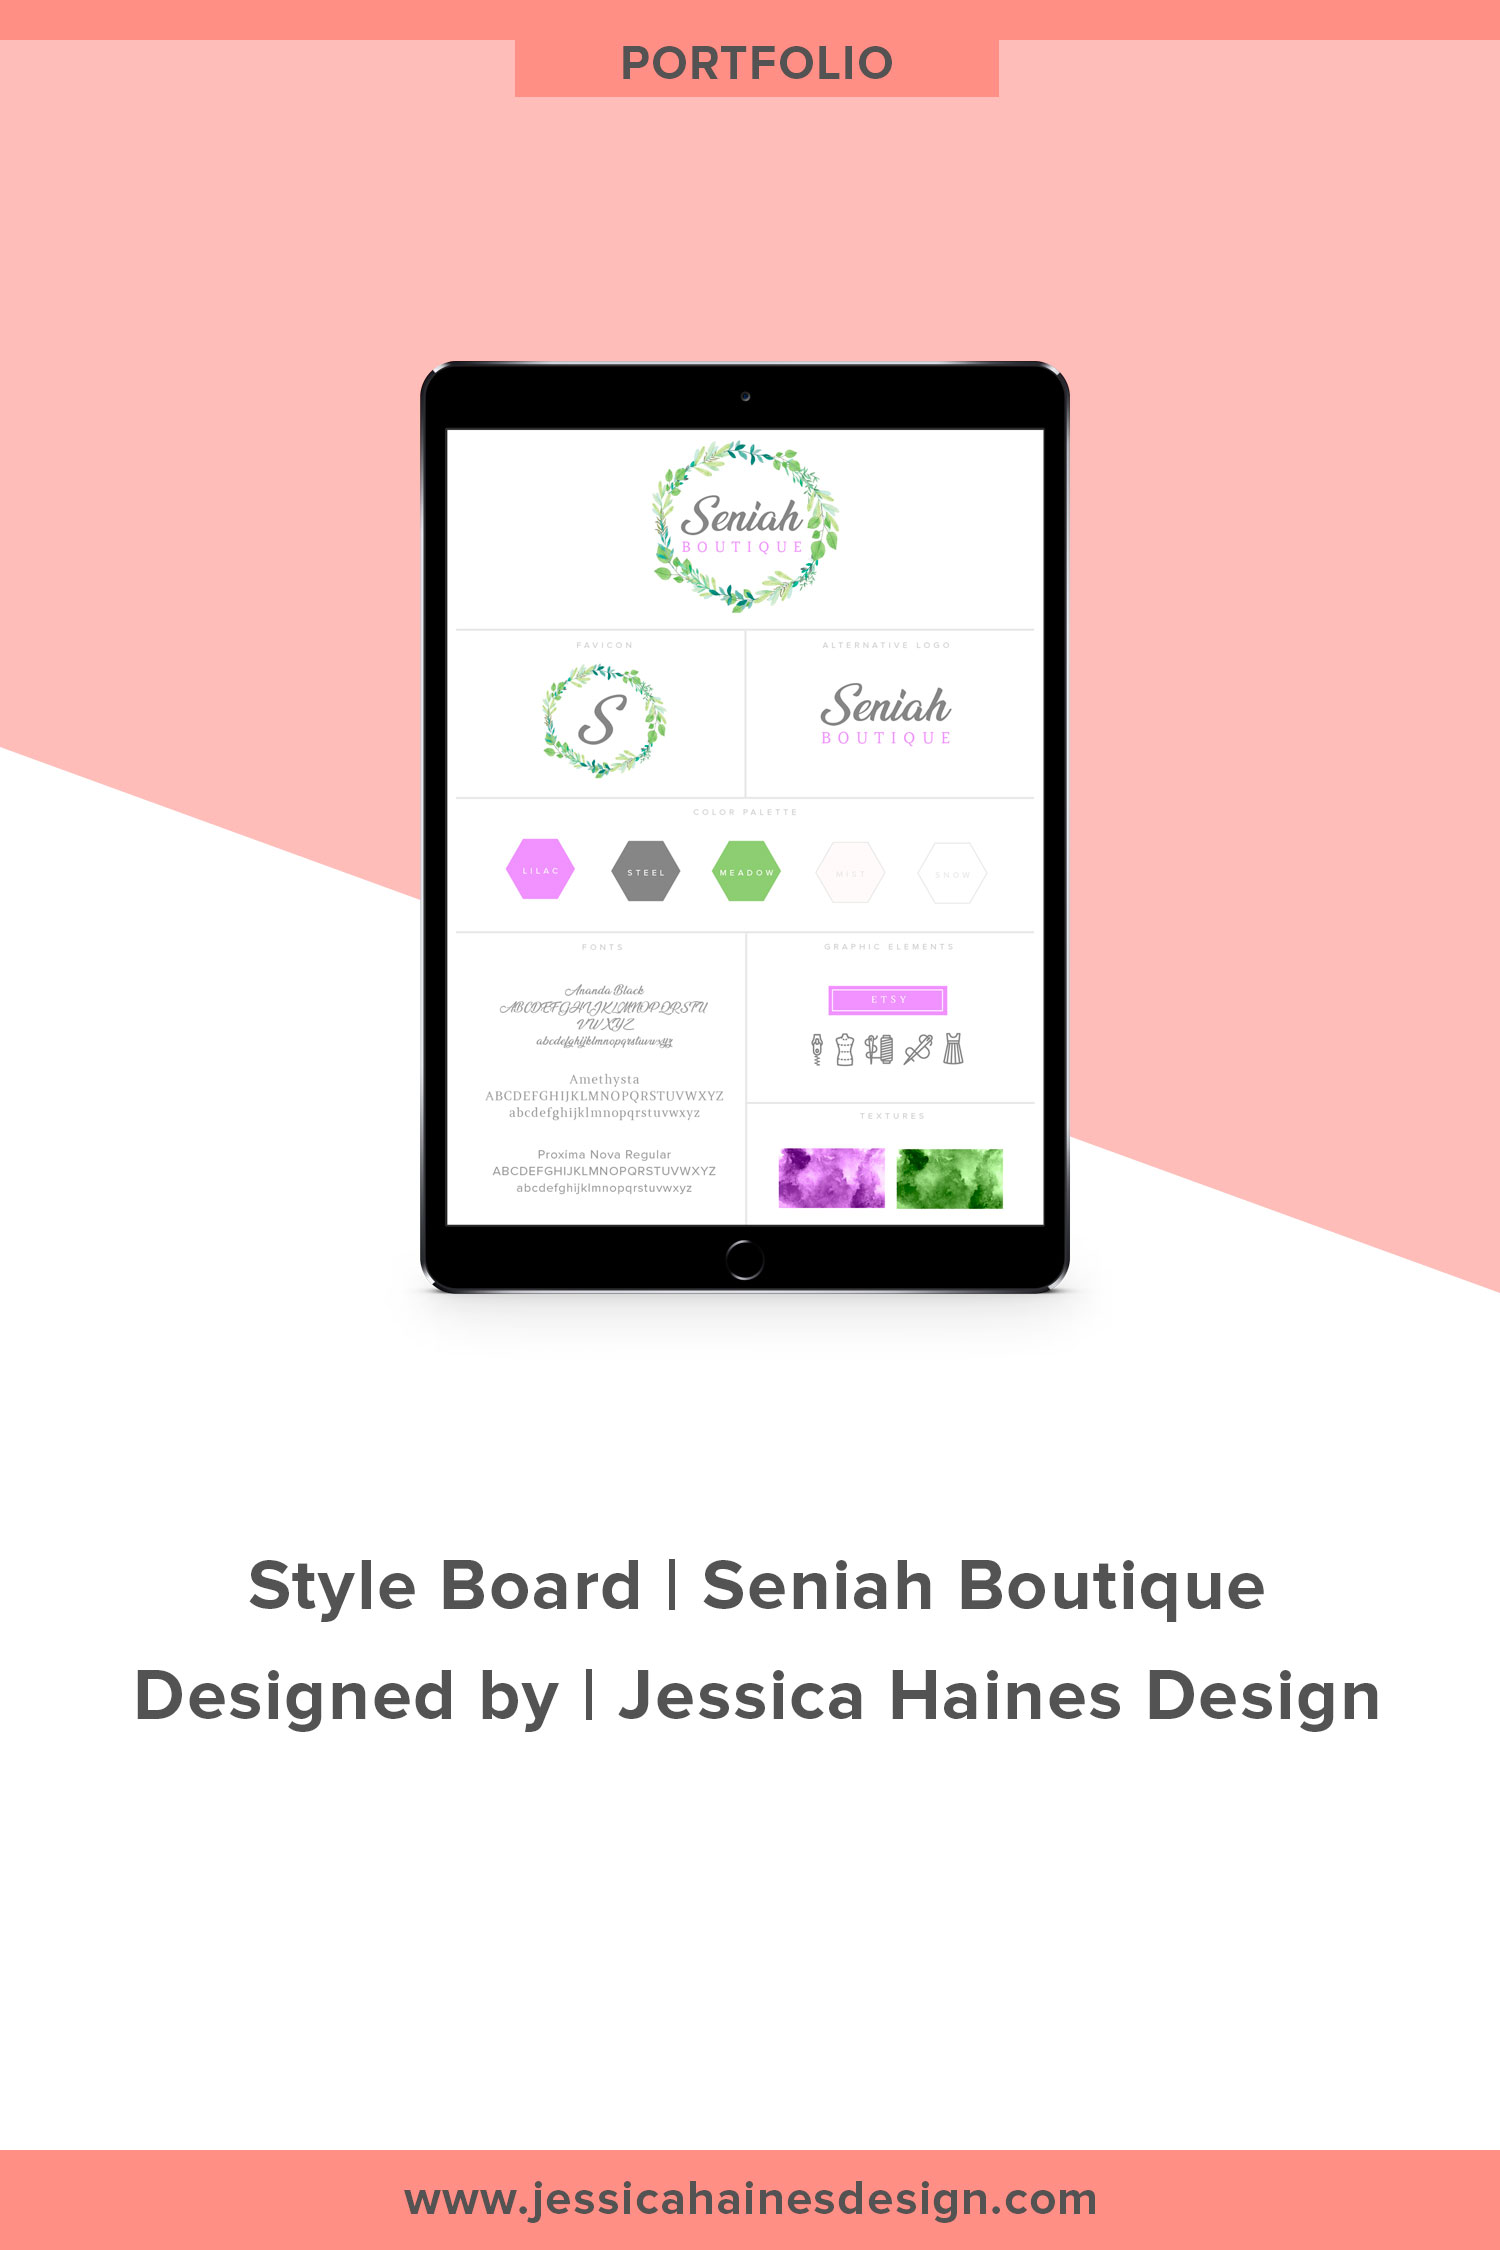 Seniah Boutique branding style board. This is the style board for a kids boutique clothing store. Want to take your brand to the next level with a custom logo and brand style board? Click through to find out how I can help you with a brand refresh |  www.jessicahainesdesign.com